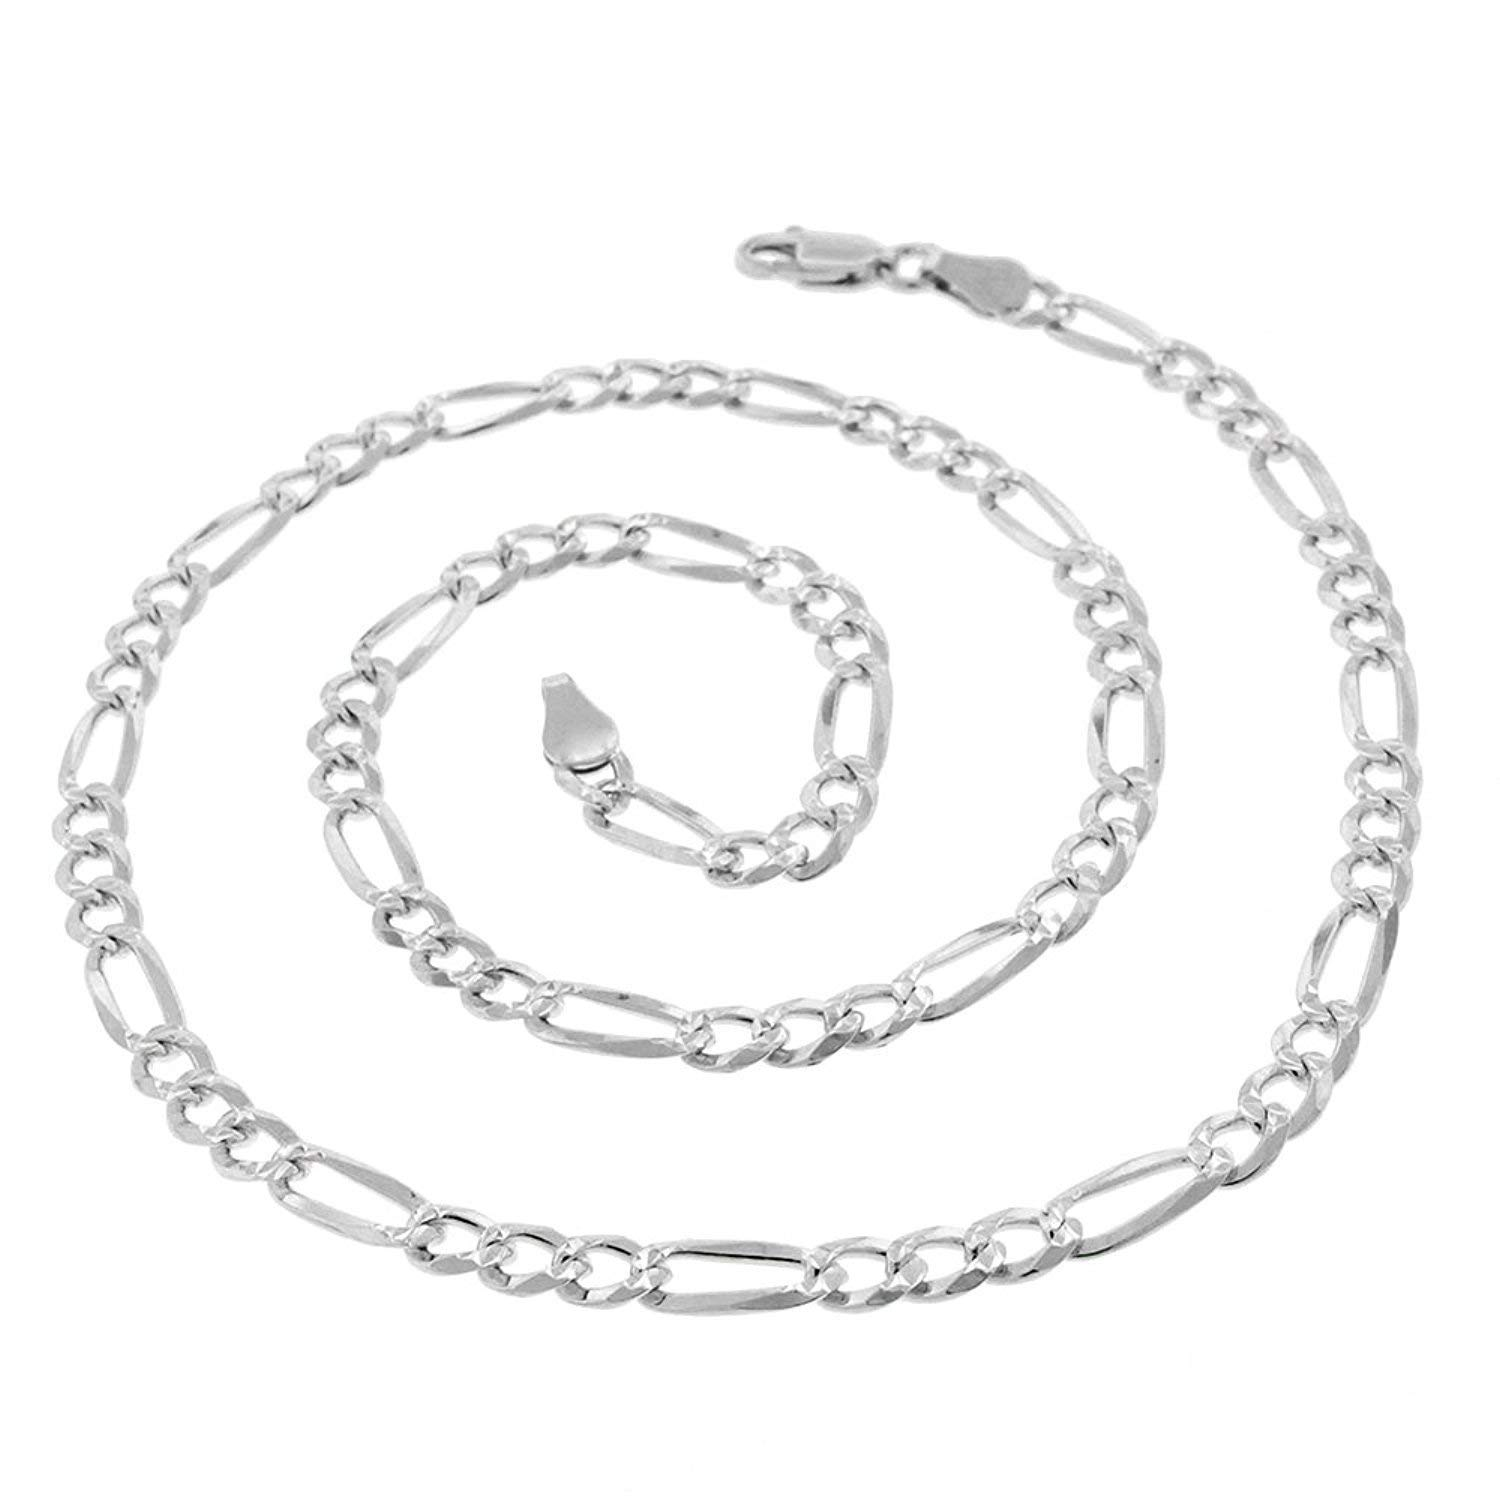 Sterling Silver Italian 4mm Figaro Link Diamond-Cut ITProLux Solid 925 Necklace Chain 16'' - 30'' (20) by In Style Designz (Image #2)